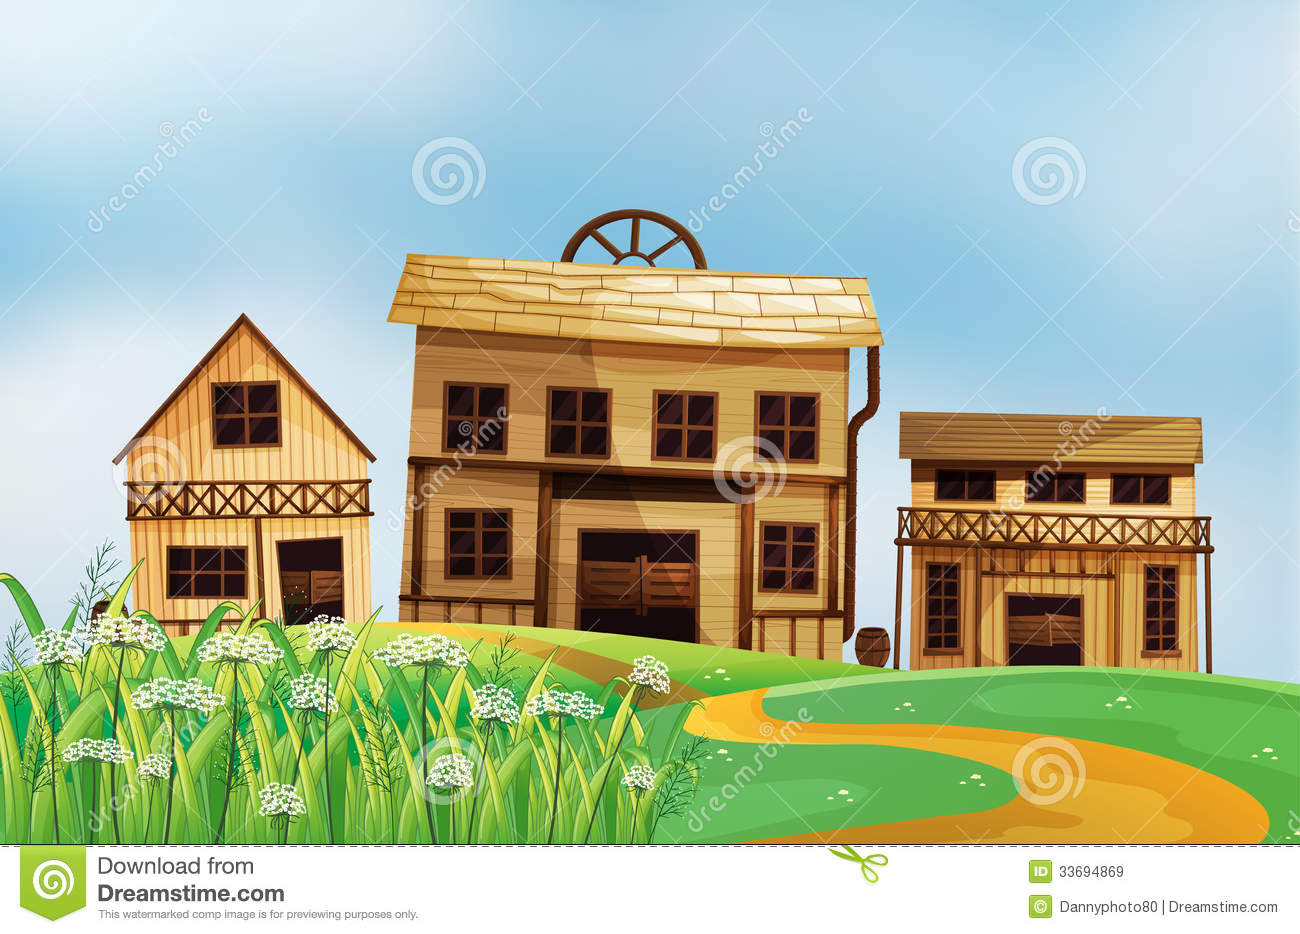 What Are The Different Styles Of Homes Three Different Styles Of Wooden Houses Stock Illustration